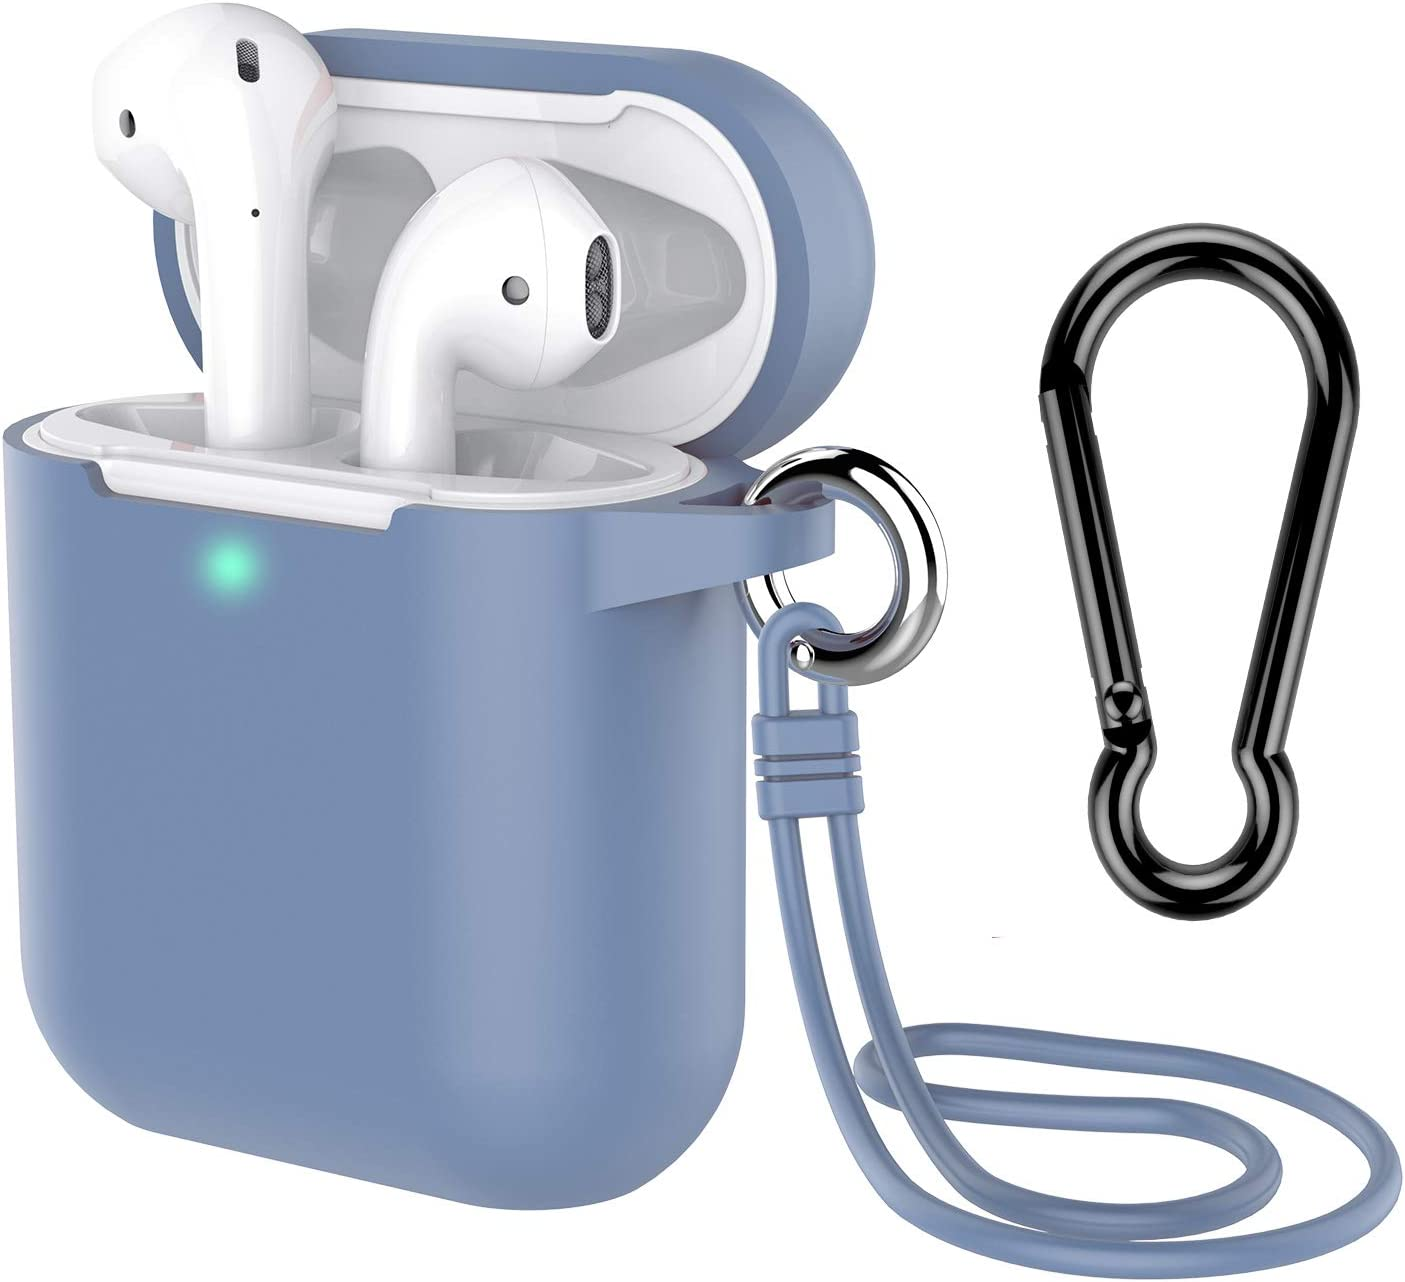 AirPods Case with Keychain, Coffea Silicone Protective Case with Stap for AirPods 2 & 1 [Front LED Visible] (Grayish Blue)